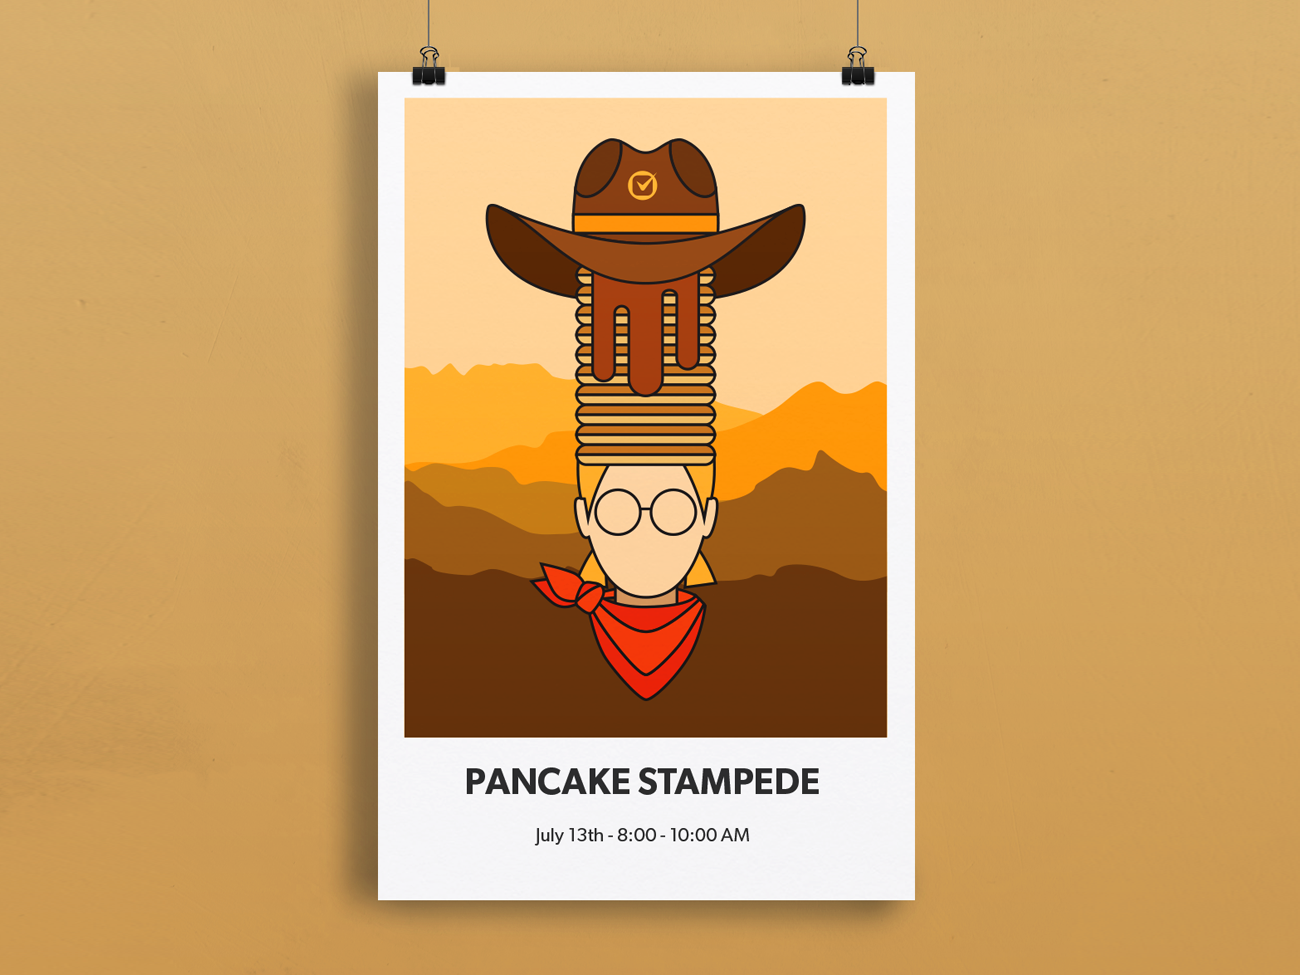 Pancake Stampede Poster in-house vector illustration poster art vector art poster illustration design graphic design